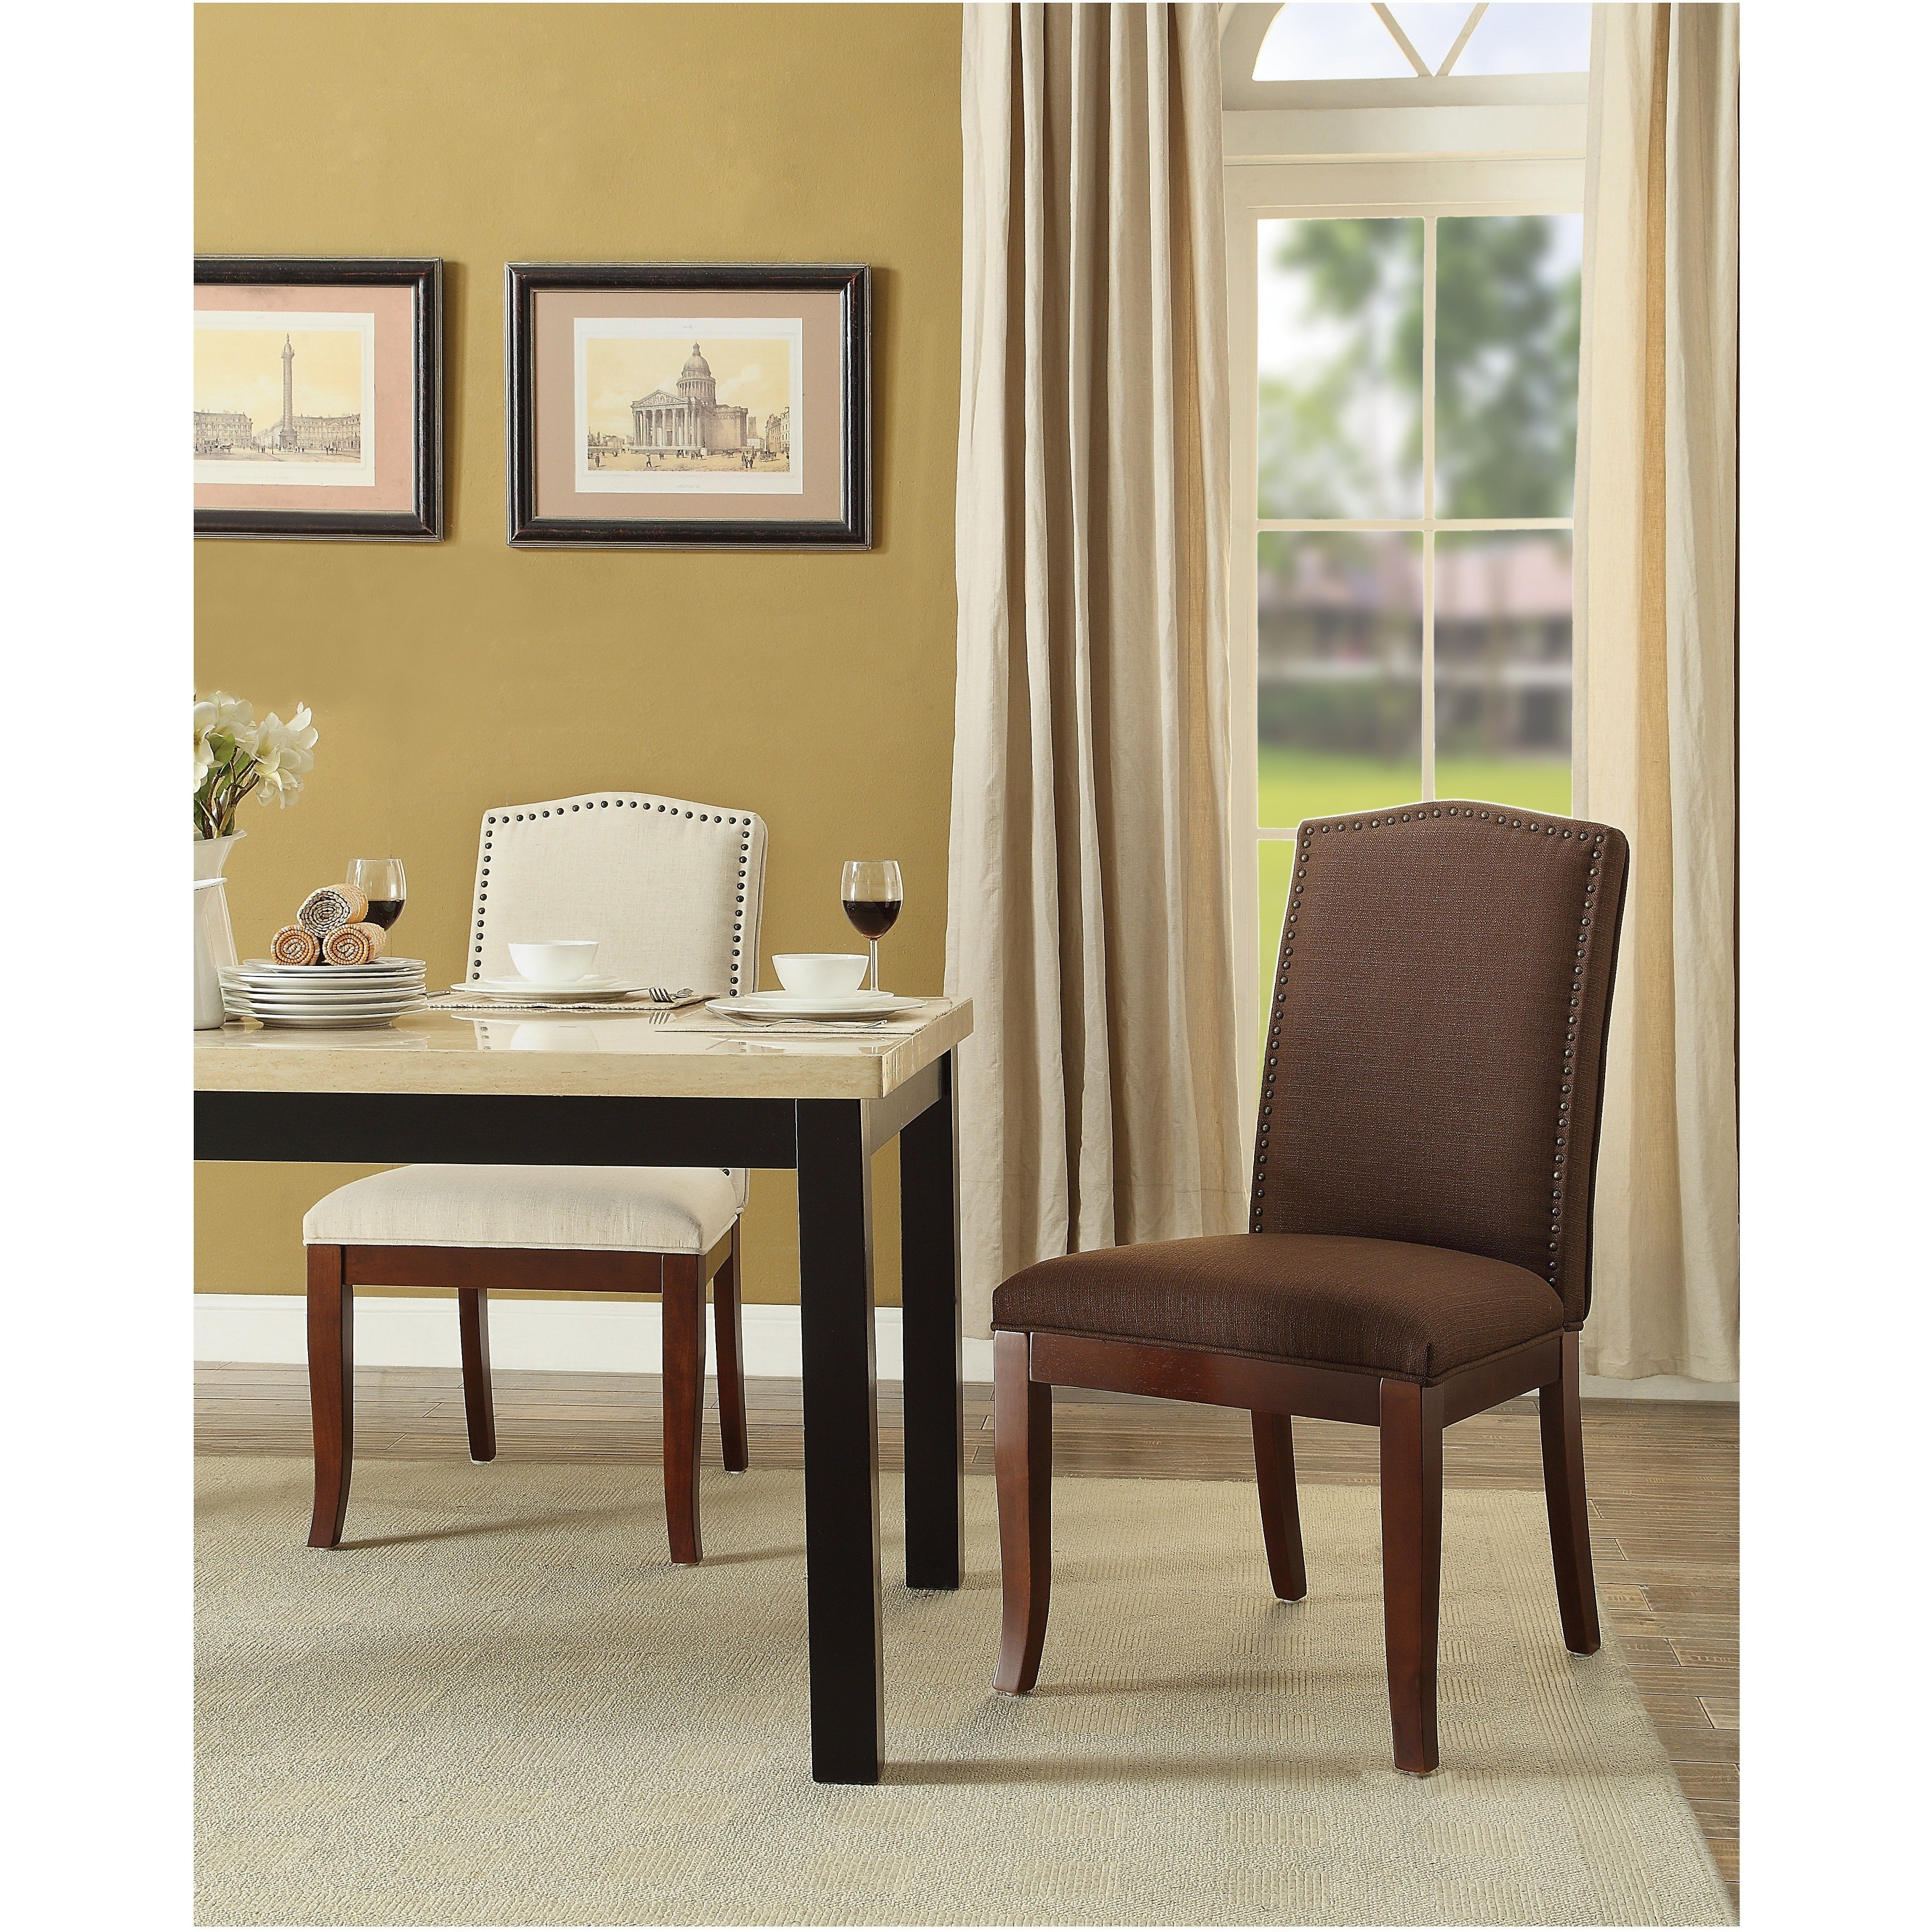 Osp Home Furnishings Hanson Dining Chair For Festival Eclipse Credenzas (View 19 of 20)